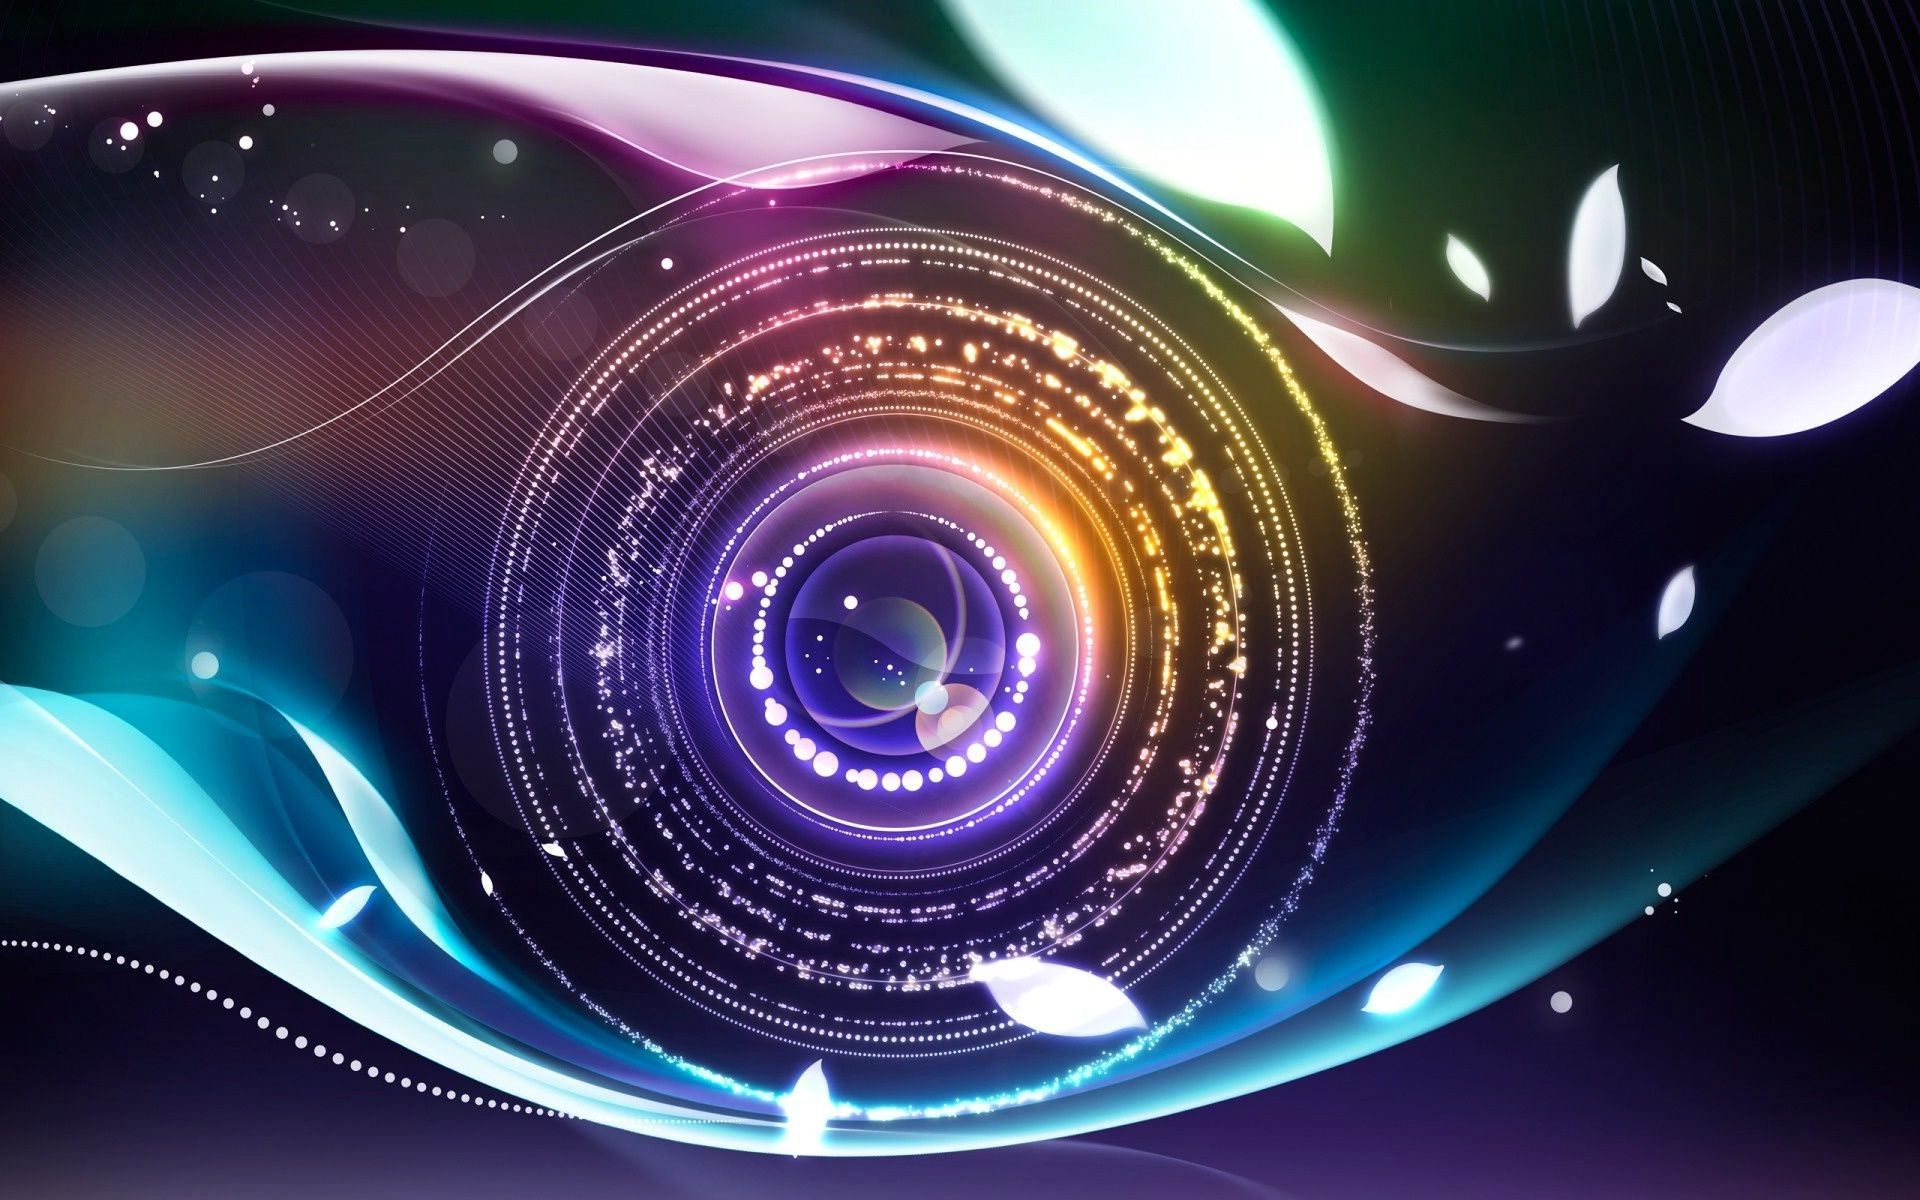 Camera Wallpaper Wallpaper Free Download 1920×1200 Camera